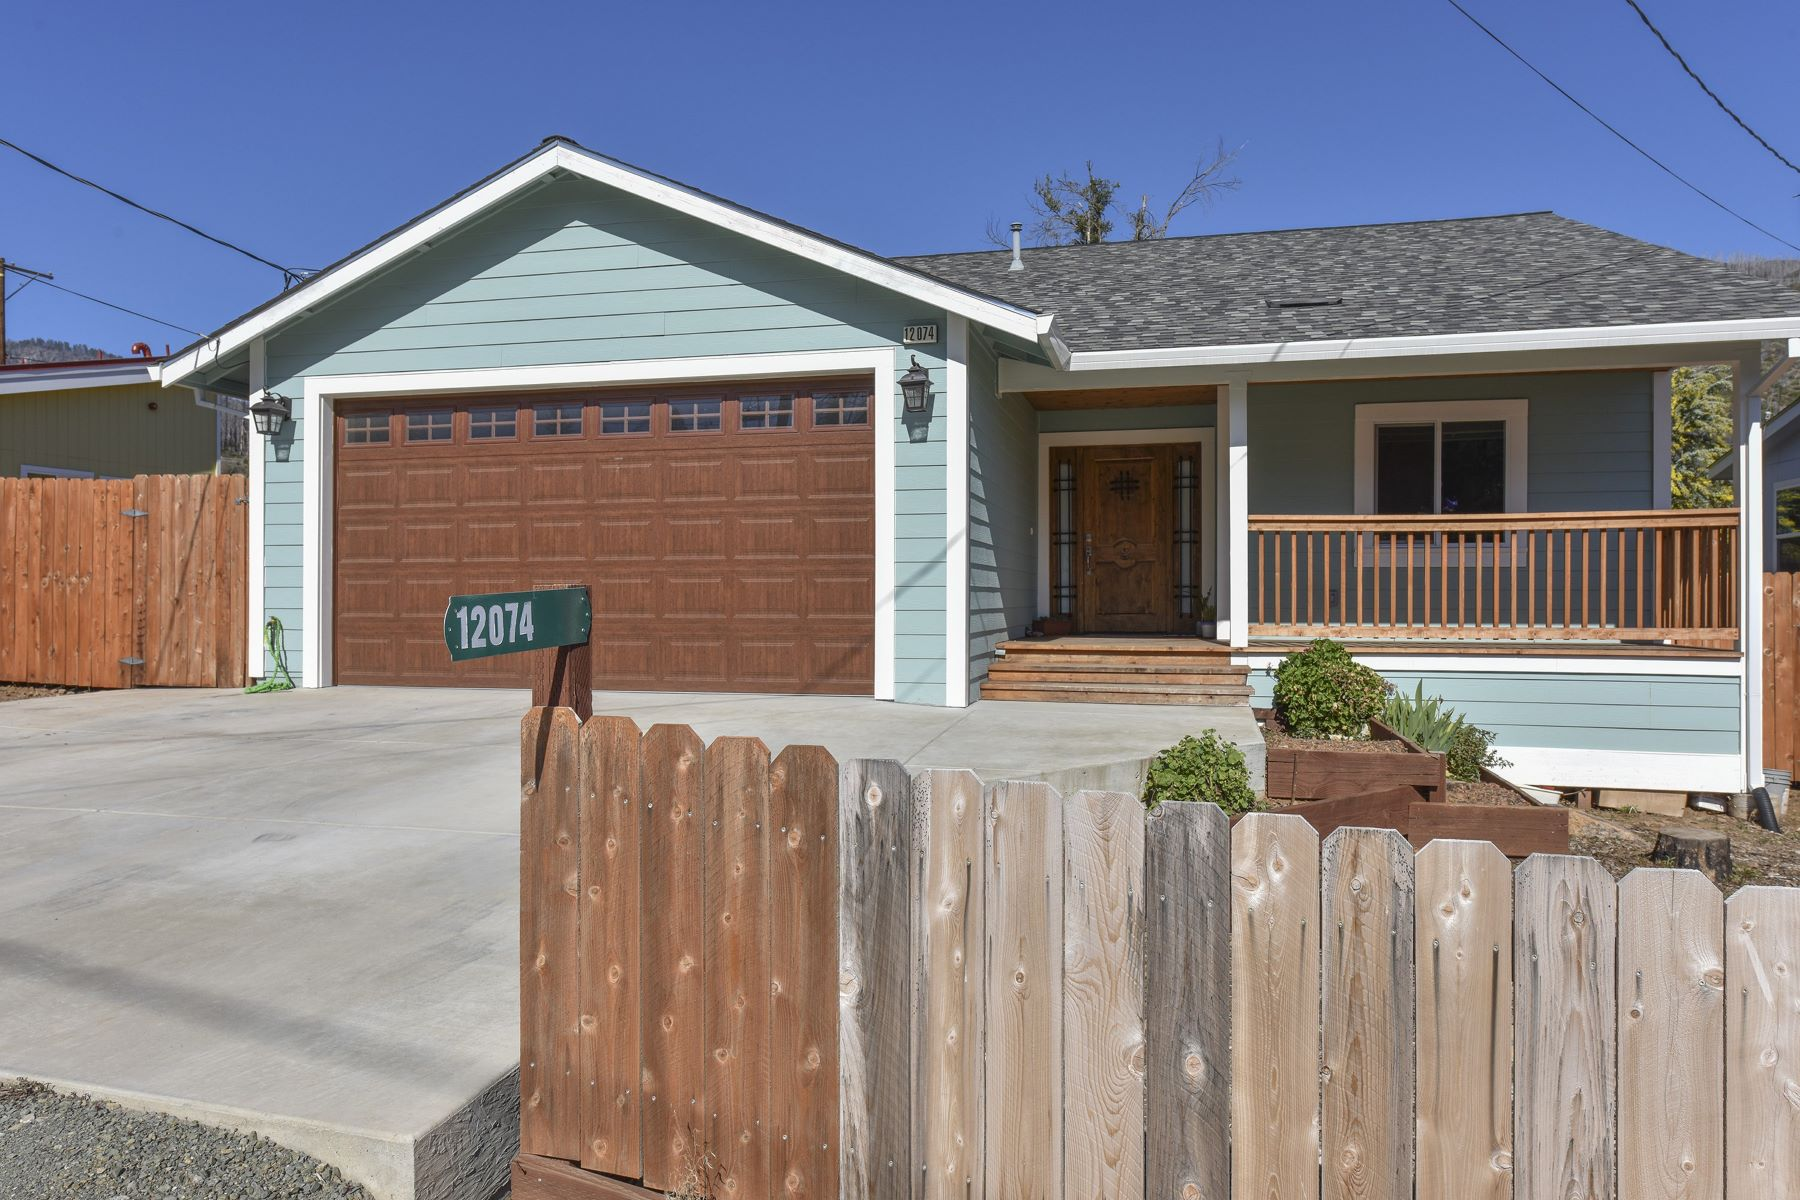 Single Family Homes for Active at Beautiful Middletown Home 12074 Mead Road Middletown, California 95461 United States